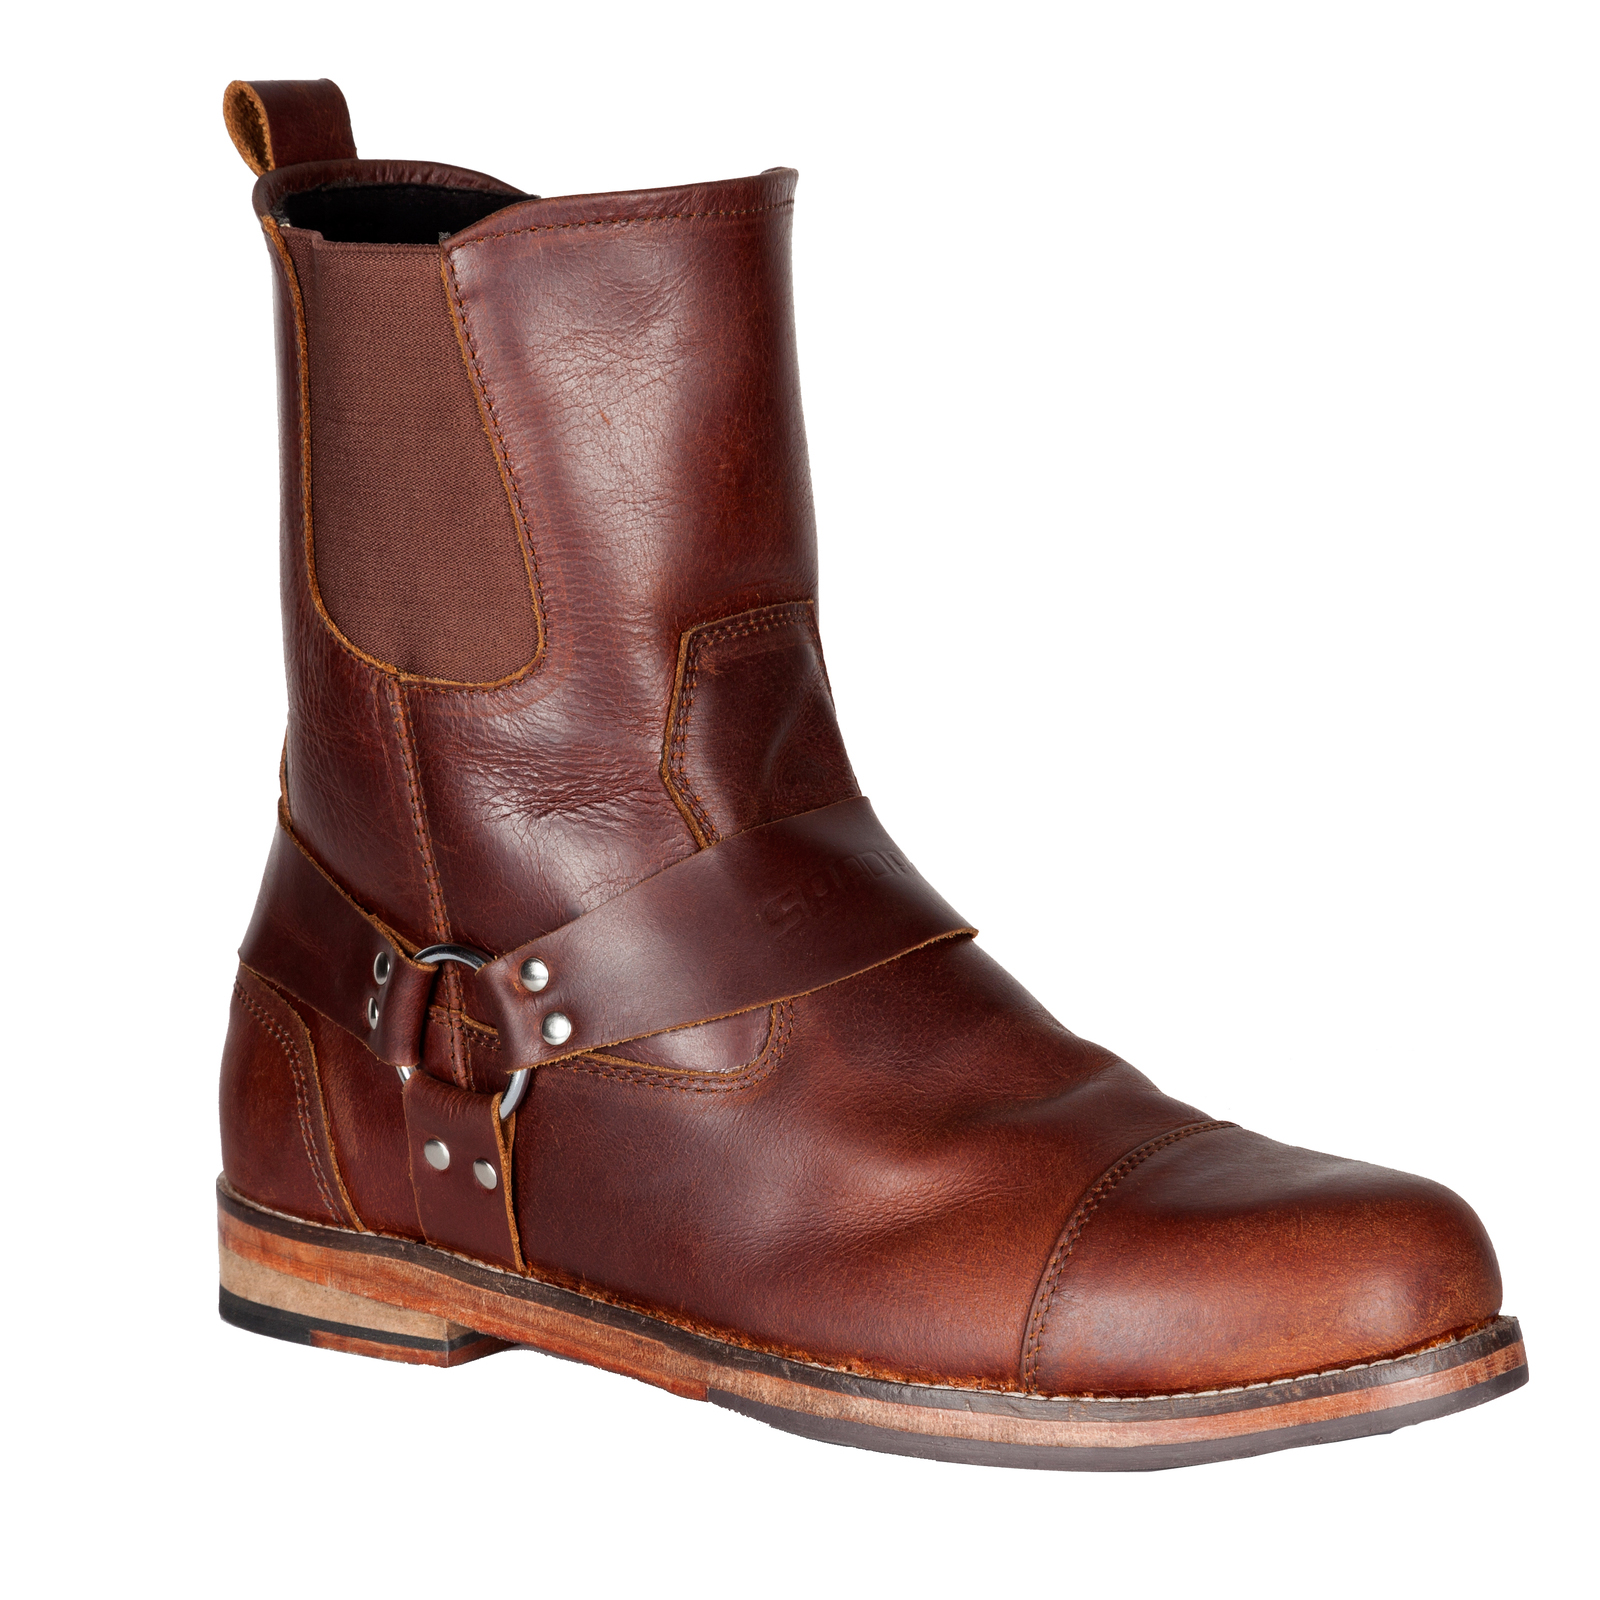 spada kensington motorcycle boots brown leather motorbike